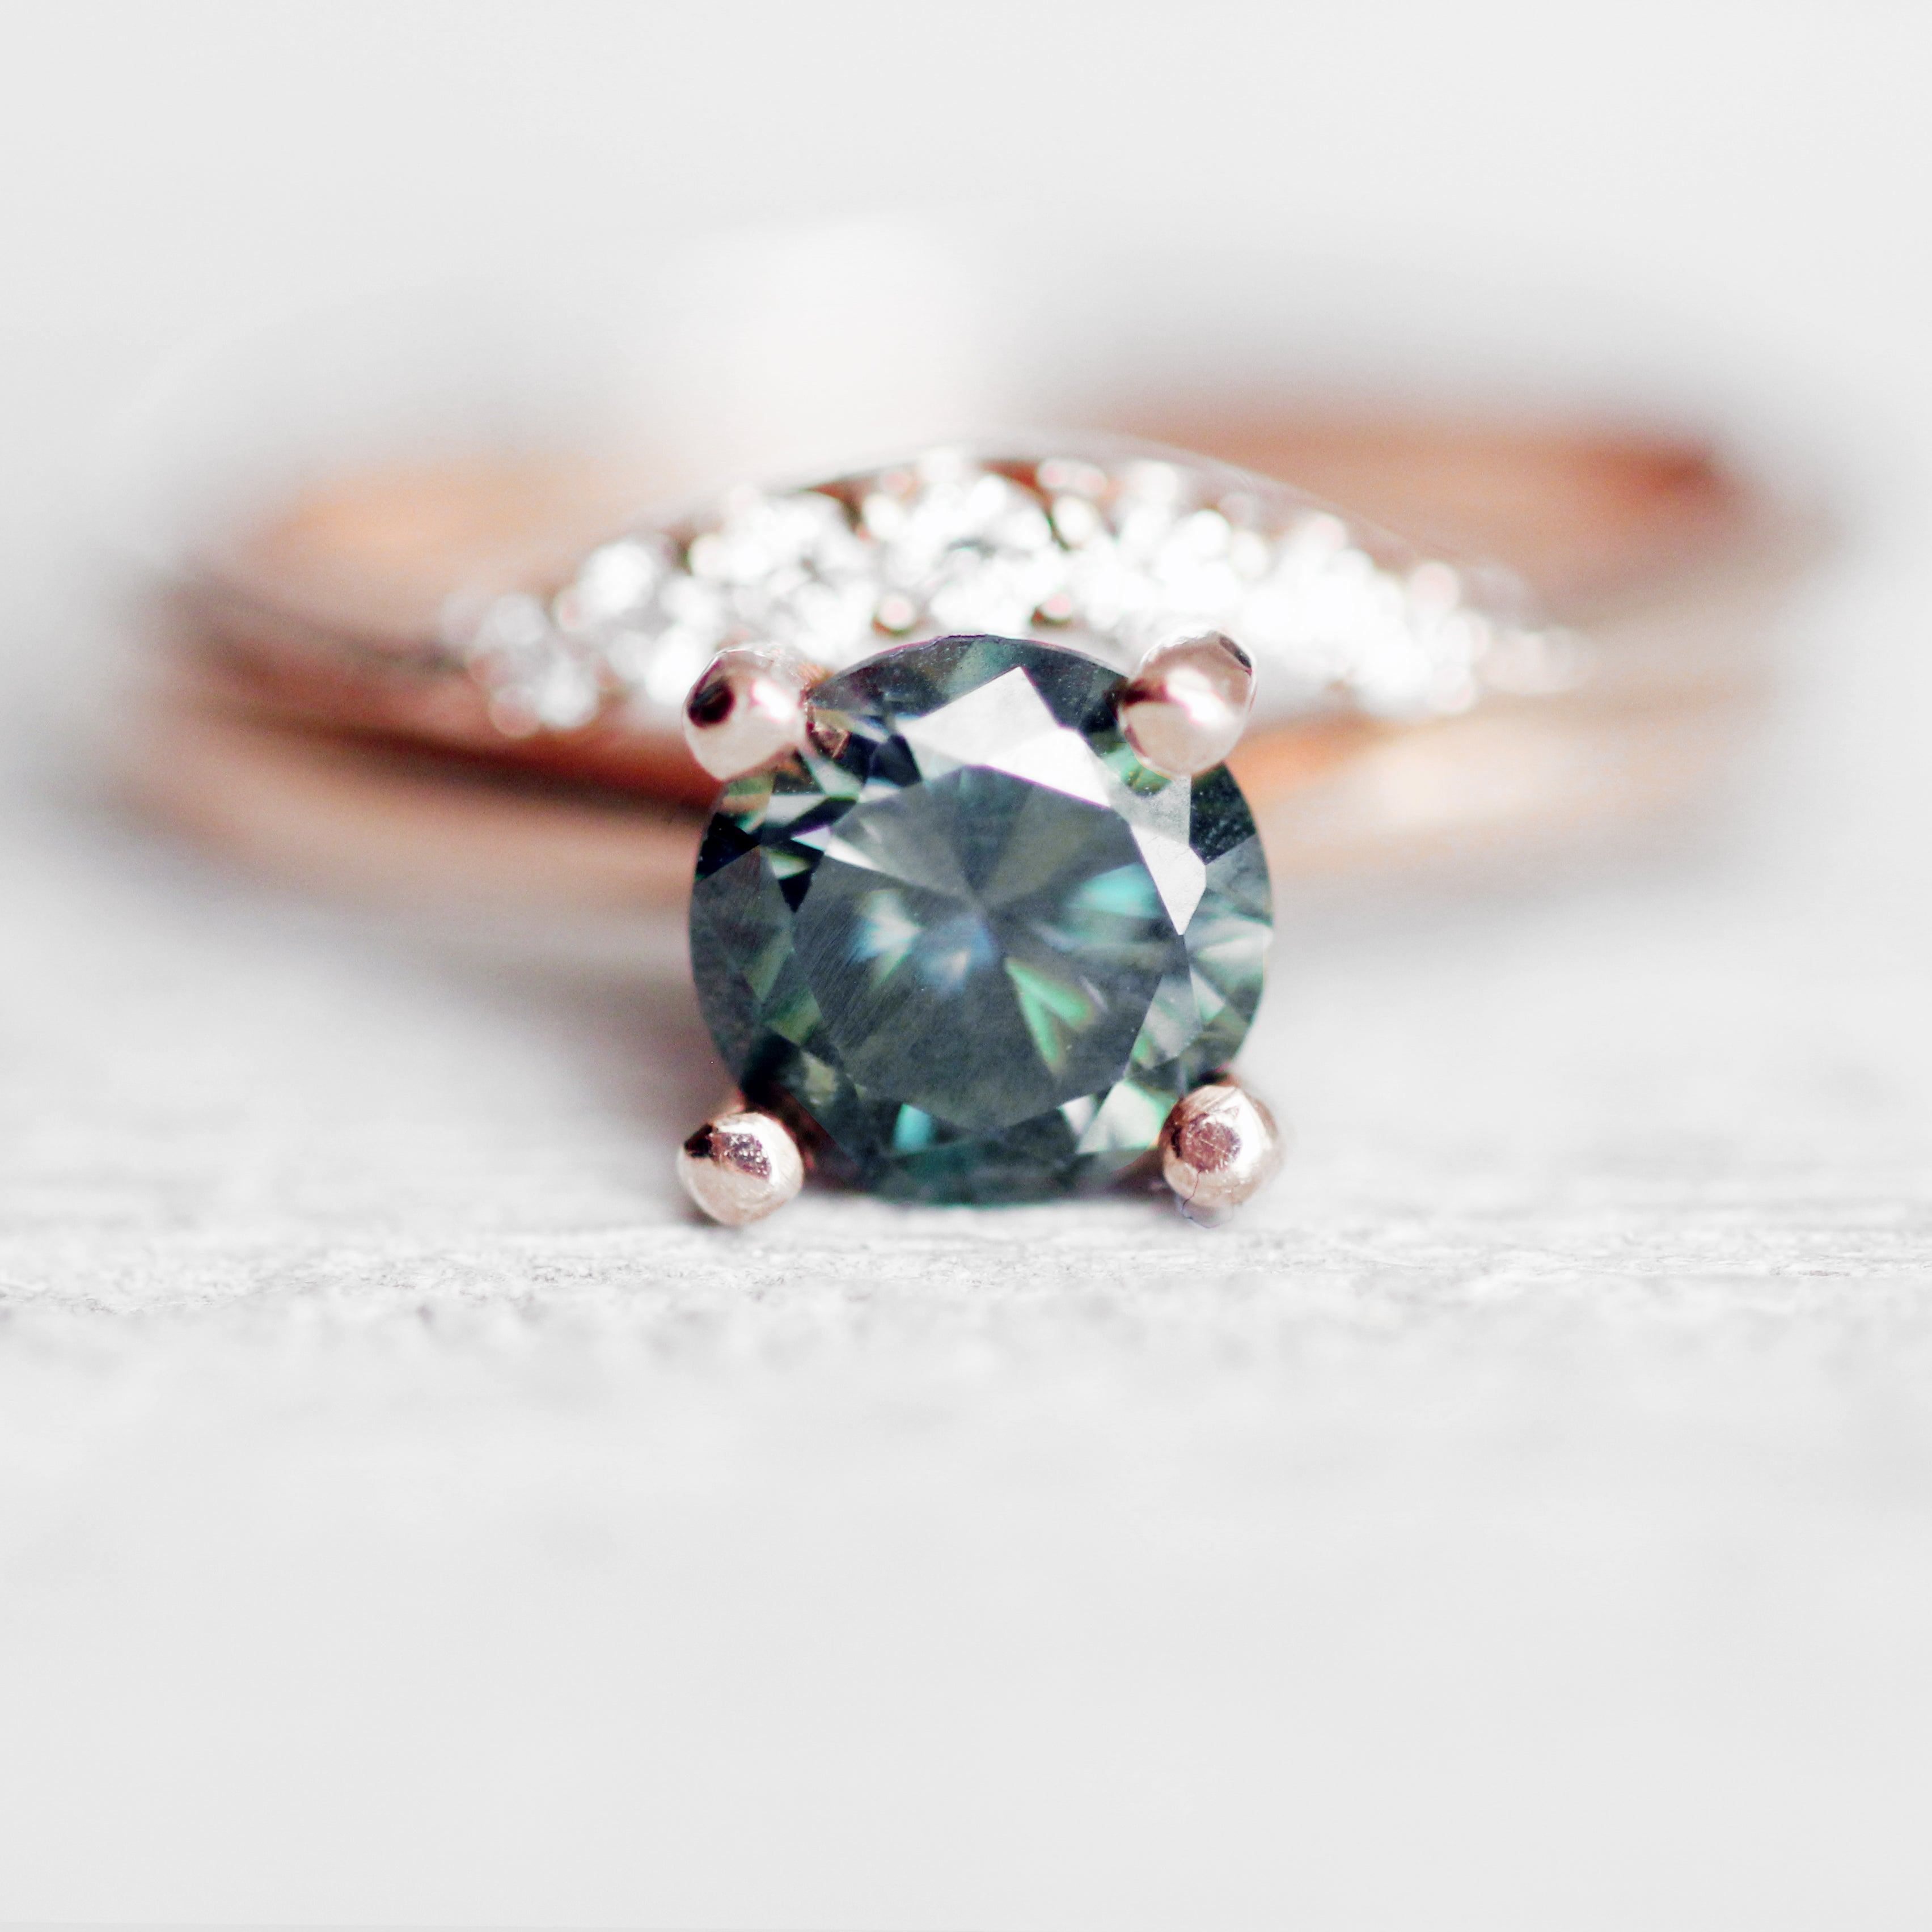 .70 carat -  Black & Teal Moissanite - Inventory Code MO70